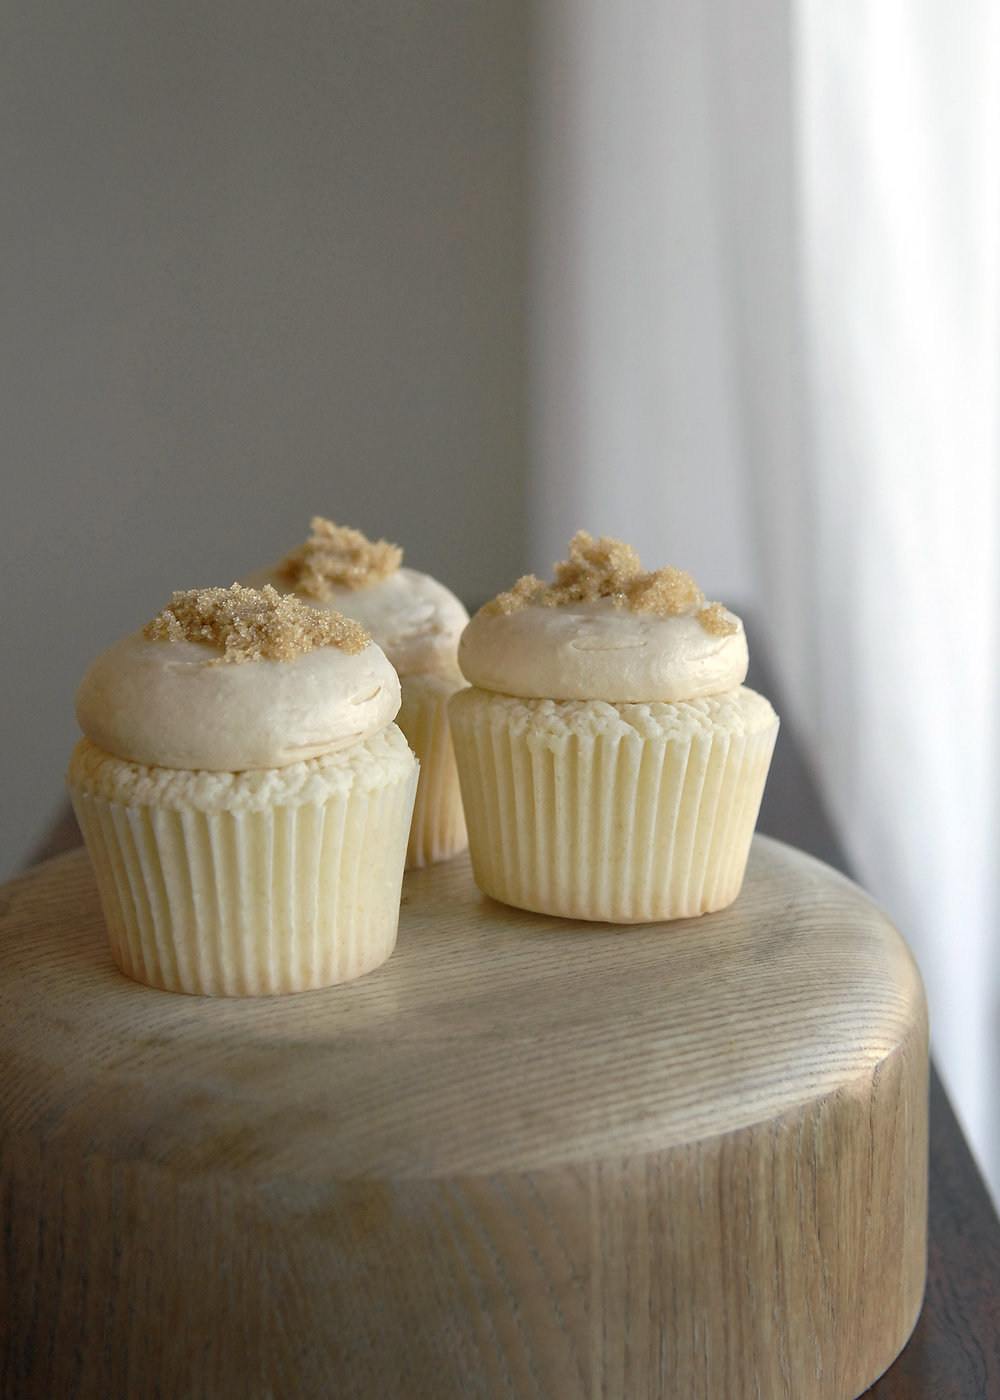 Brown Sugar Caramel Cupcake $2.75 each / $30 per dozen A fall favorite!  Cooked caramel frosting atop tender little cupcakes with just a pinch of brown sugar on top!  (Available September through January)